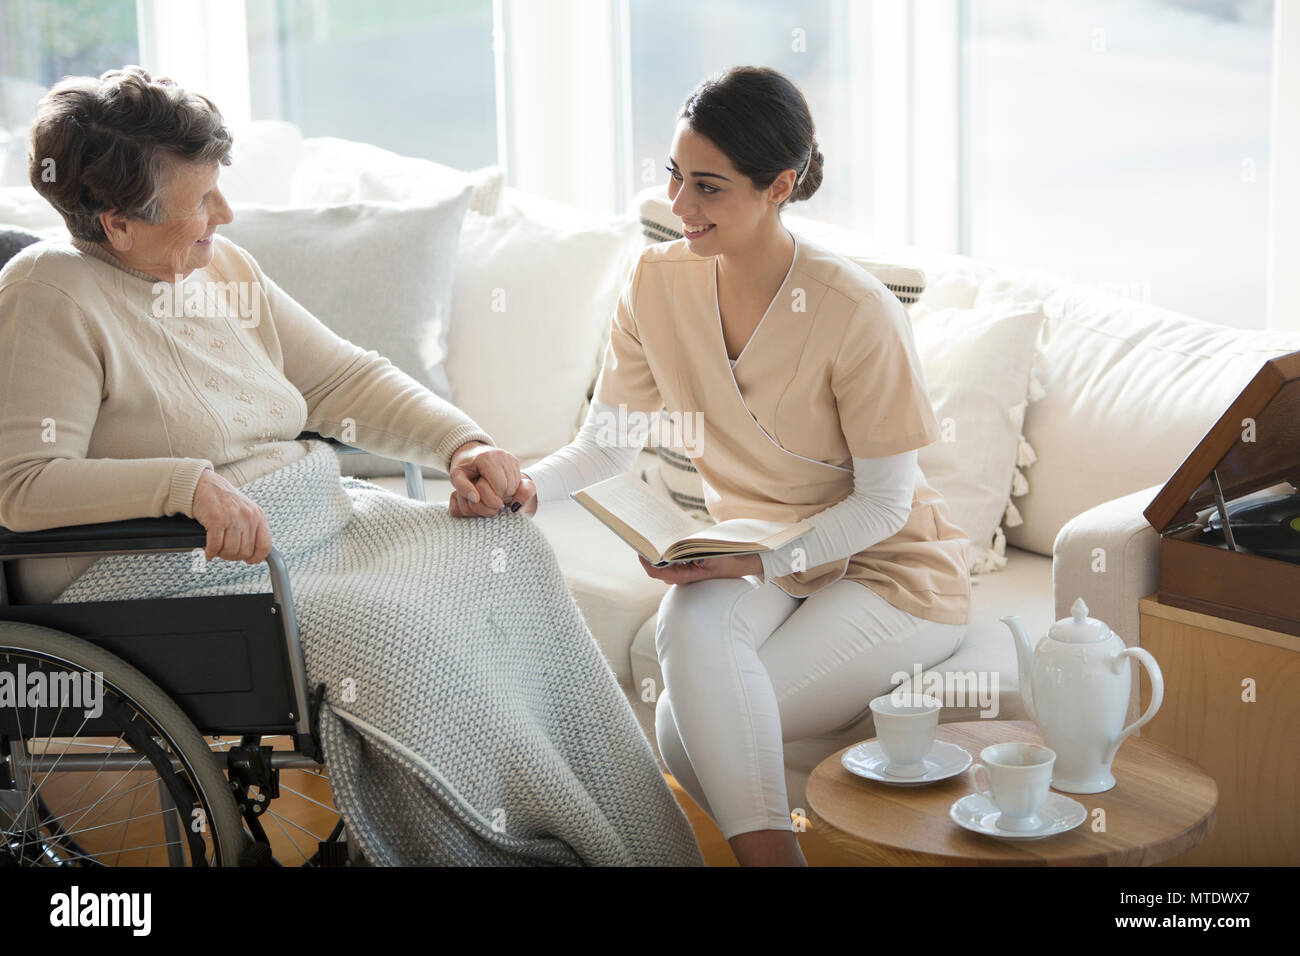 A disabled old woman in a wheelchair holding the hand of a tender professional medical assistant during tea time in a living room of luxury retirement - Stock Image